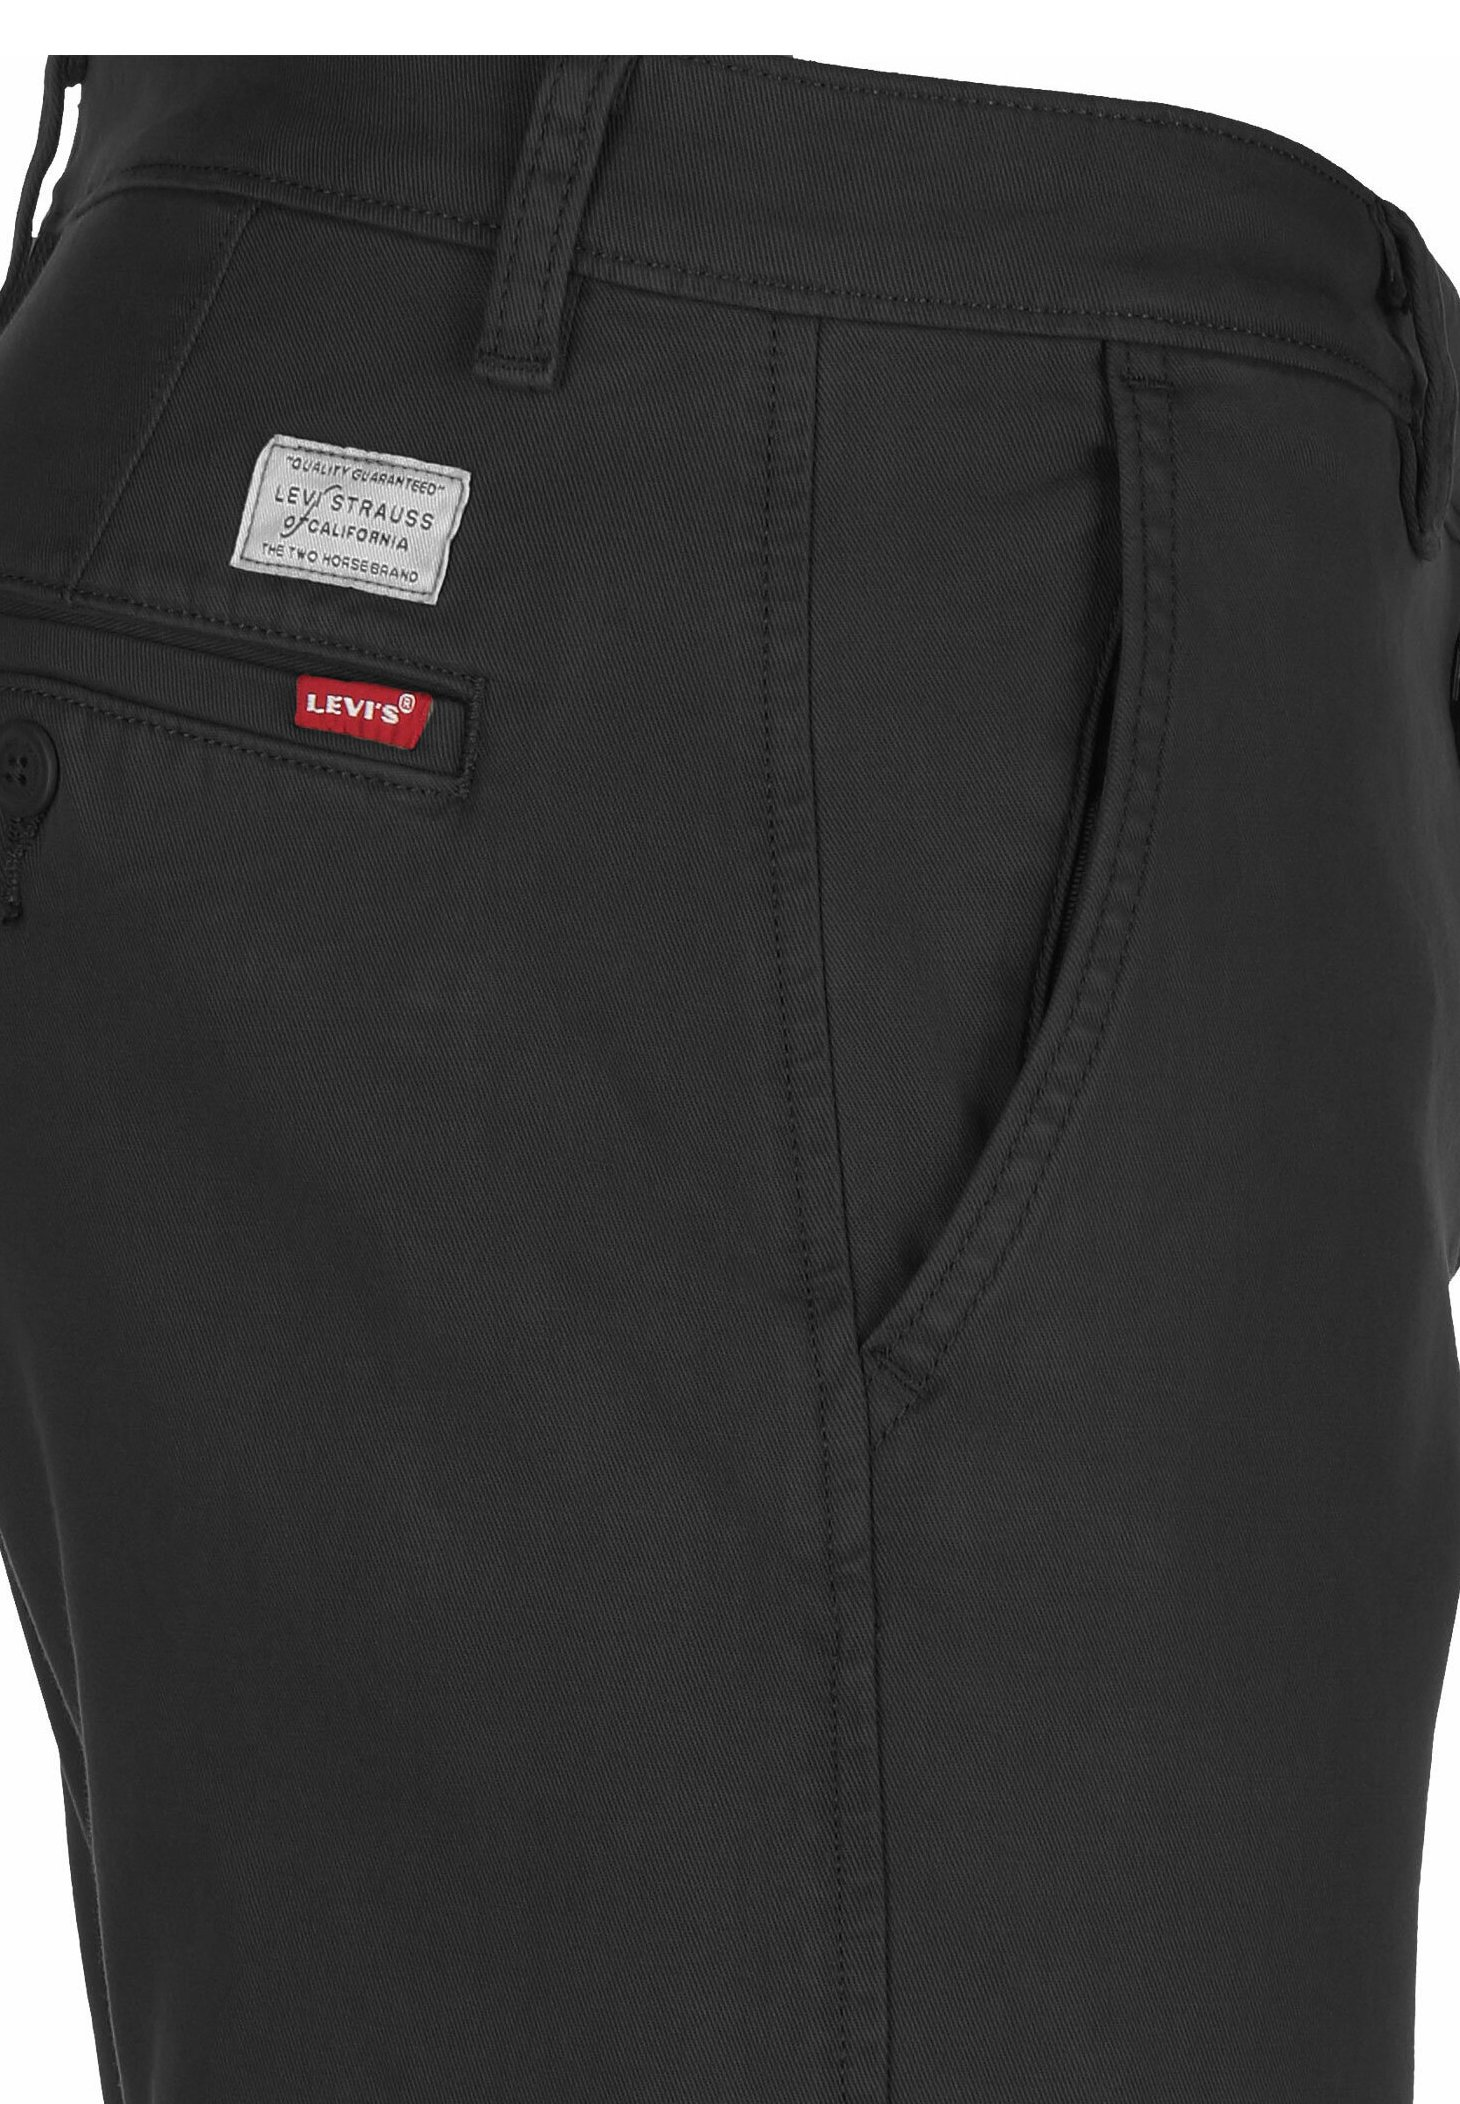 Fashionable Factory Outlet Men's Clothing Levi's® XX CHINO SLIM II Chinos mineral black 0iXTPN7ZO qZw5Kp2Ze